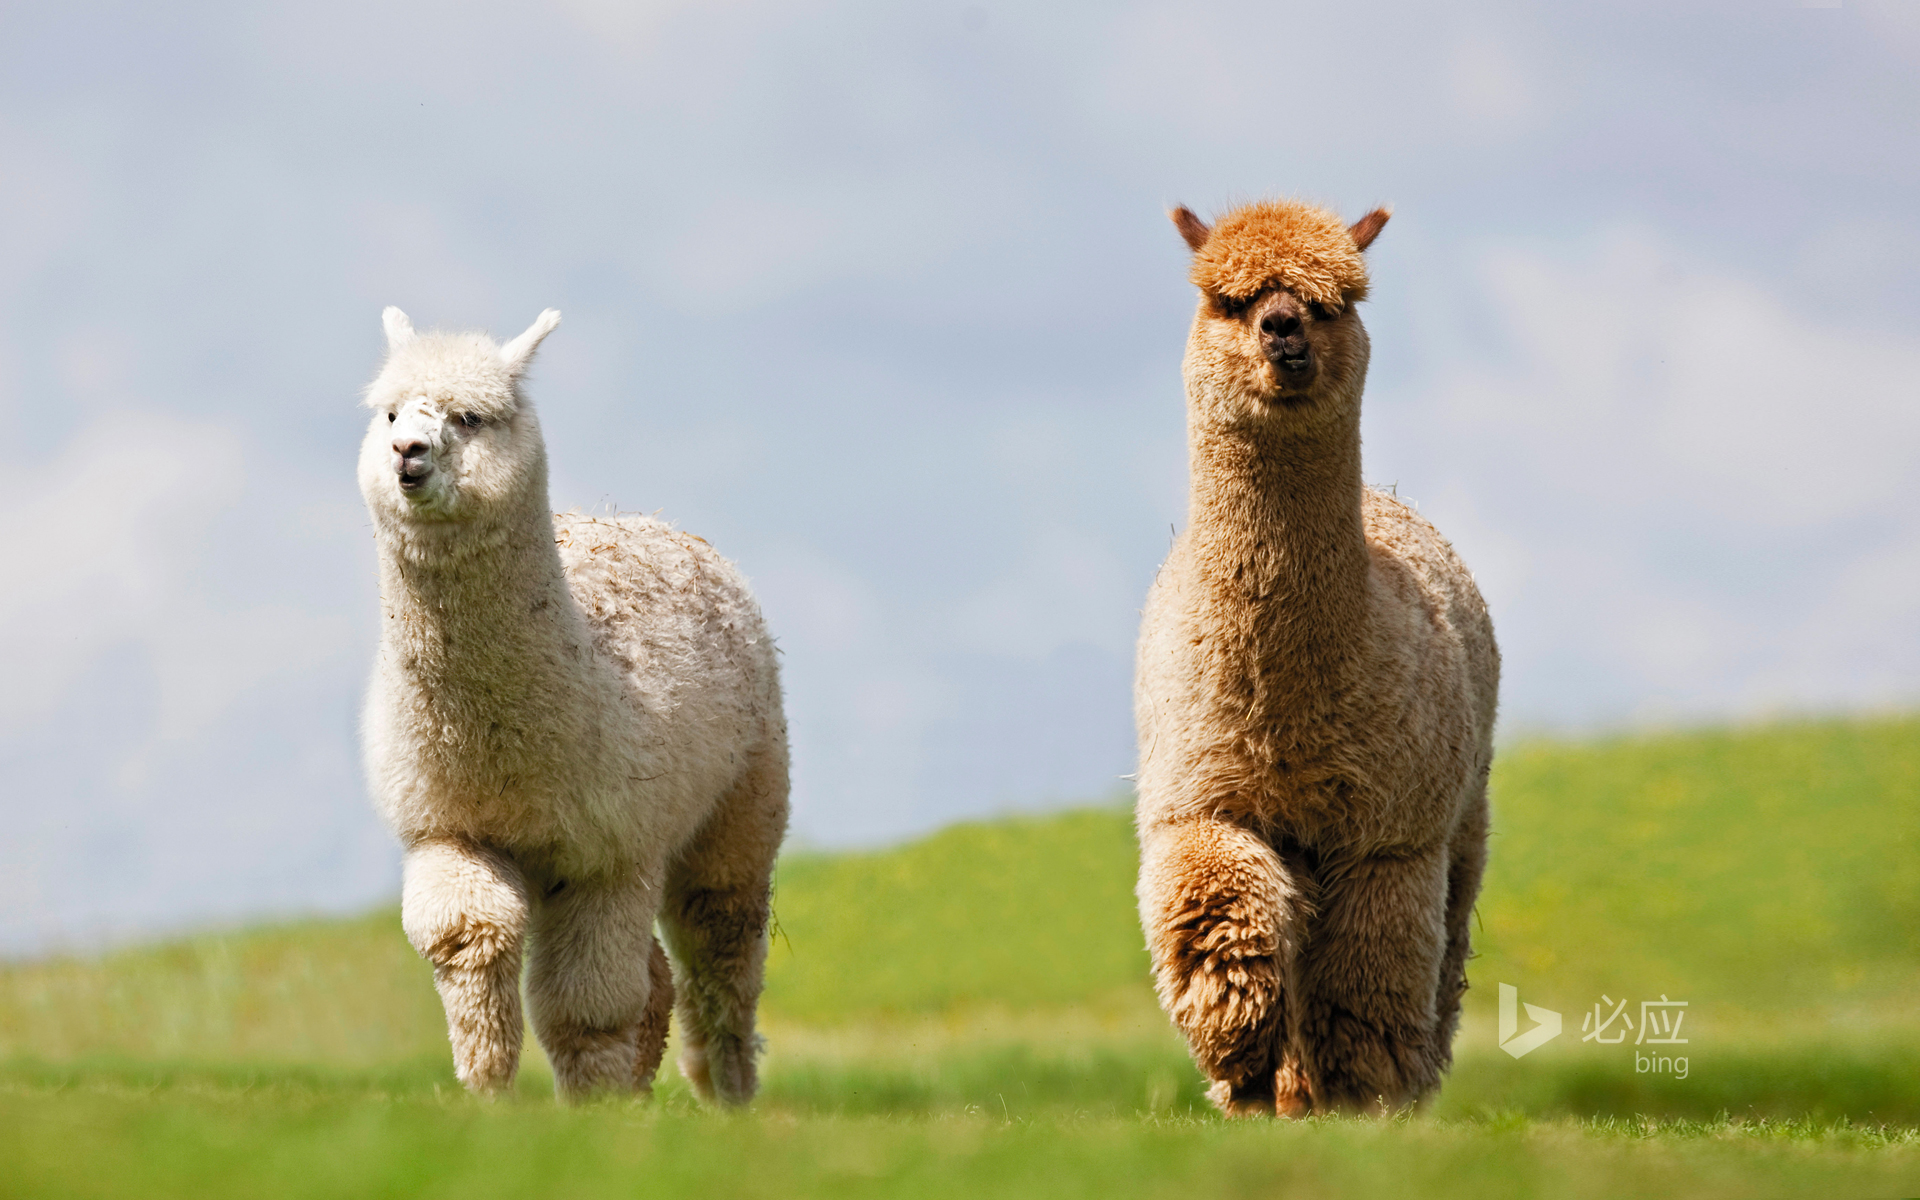 Two llamas on the grass